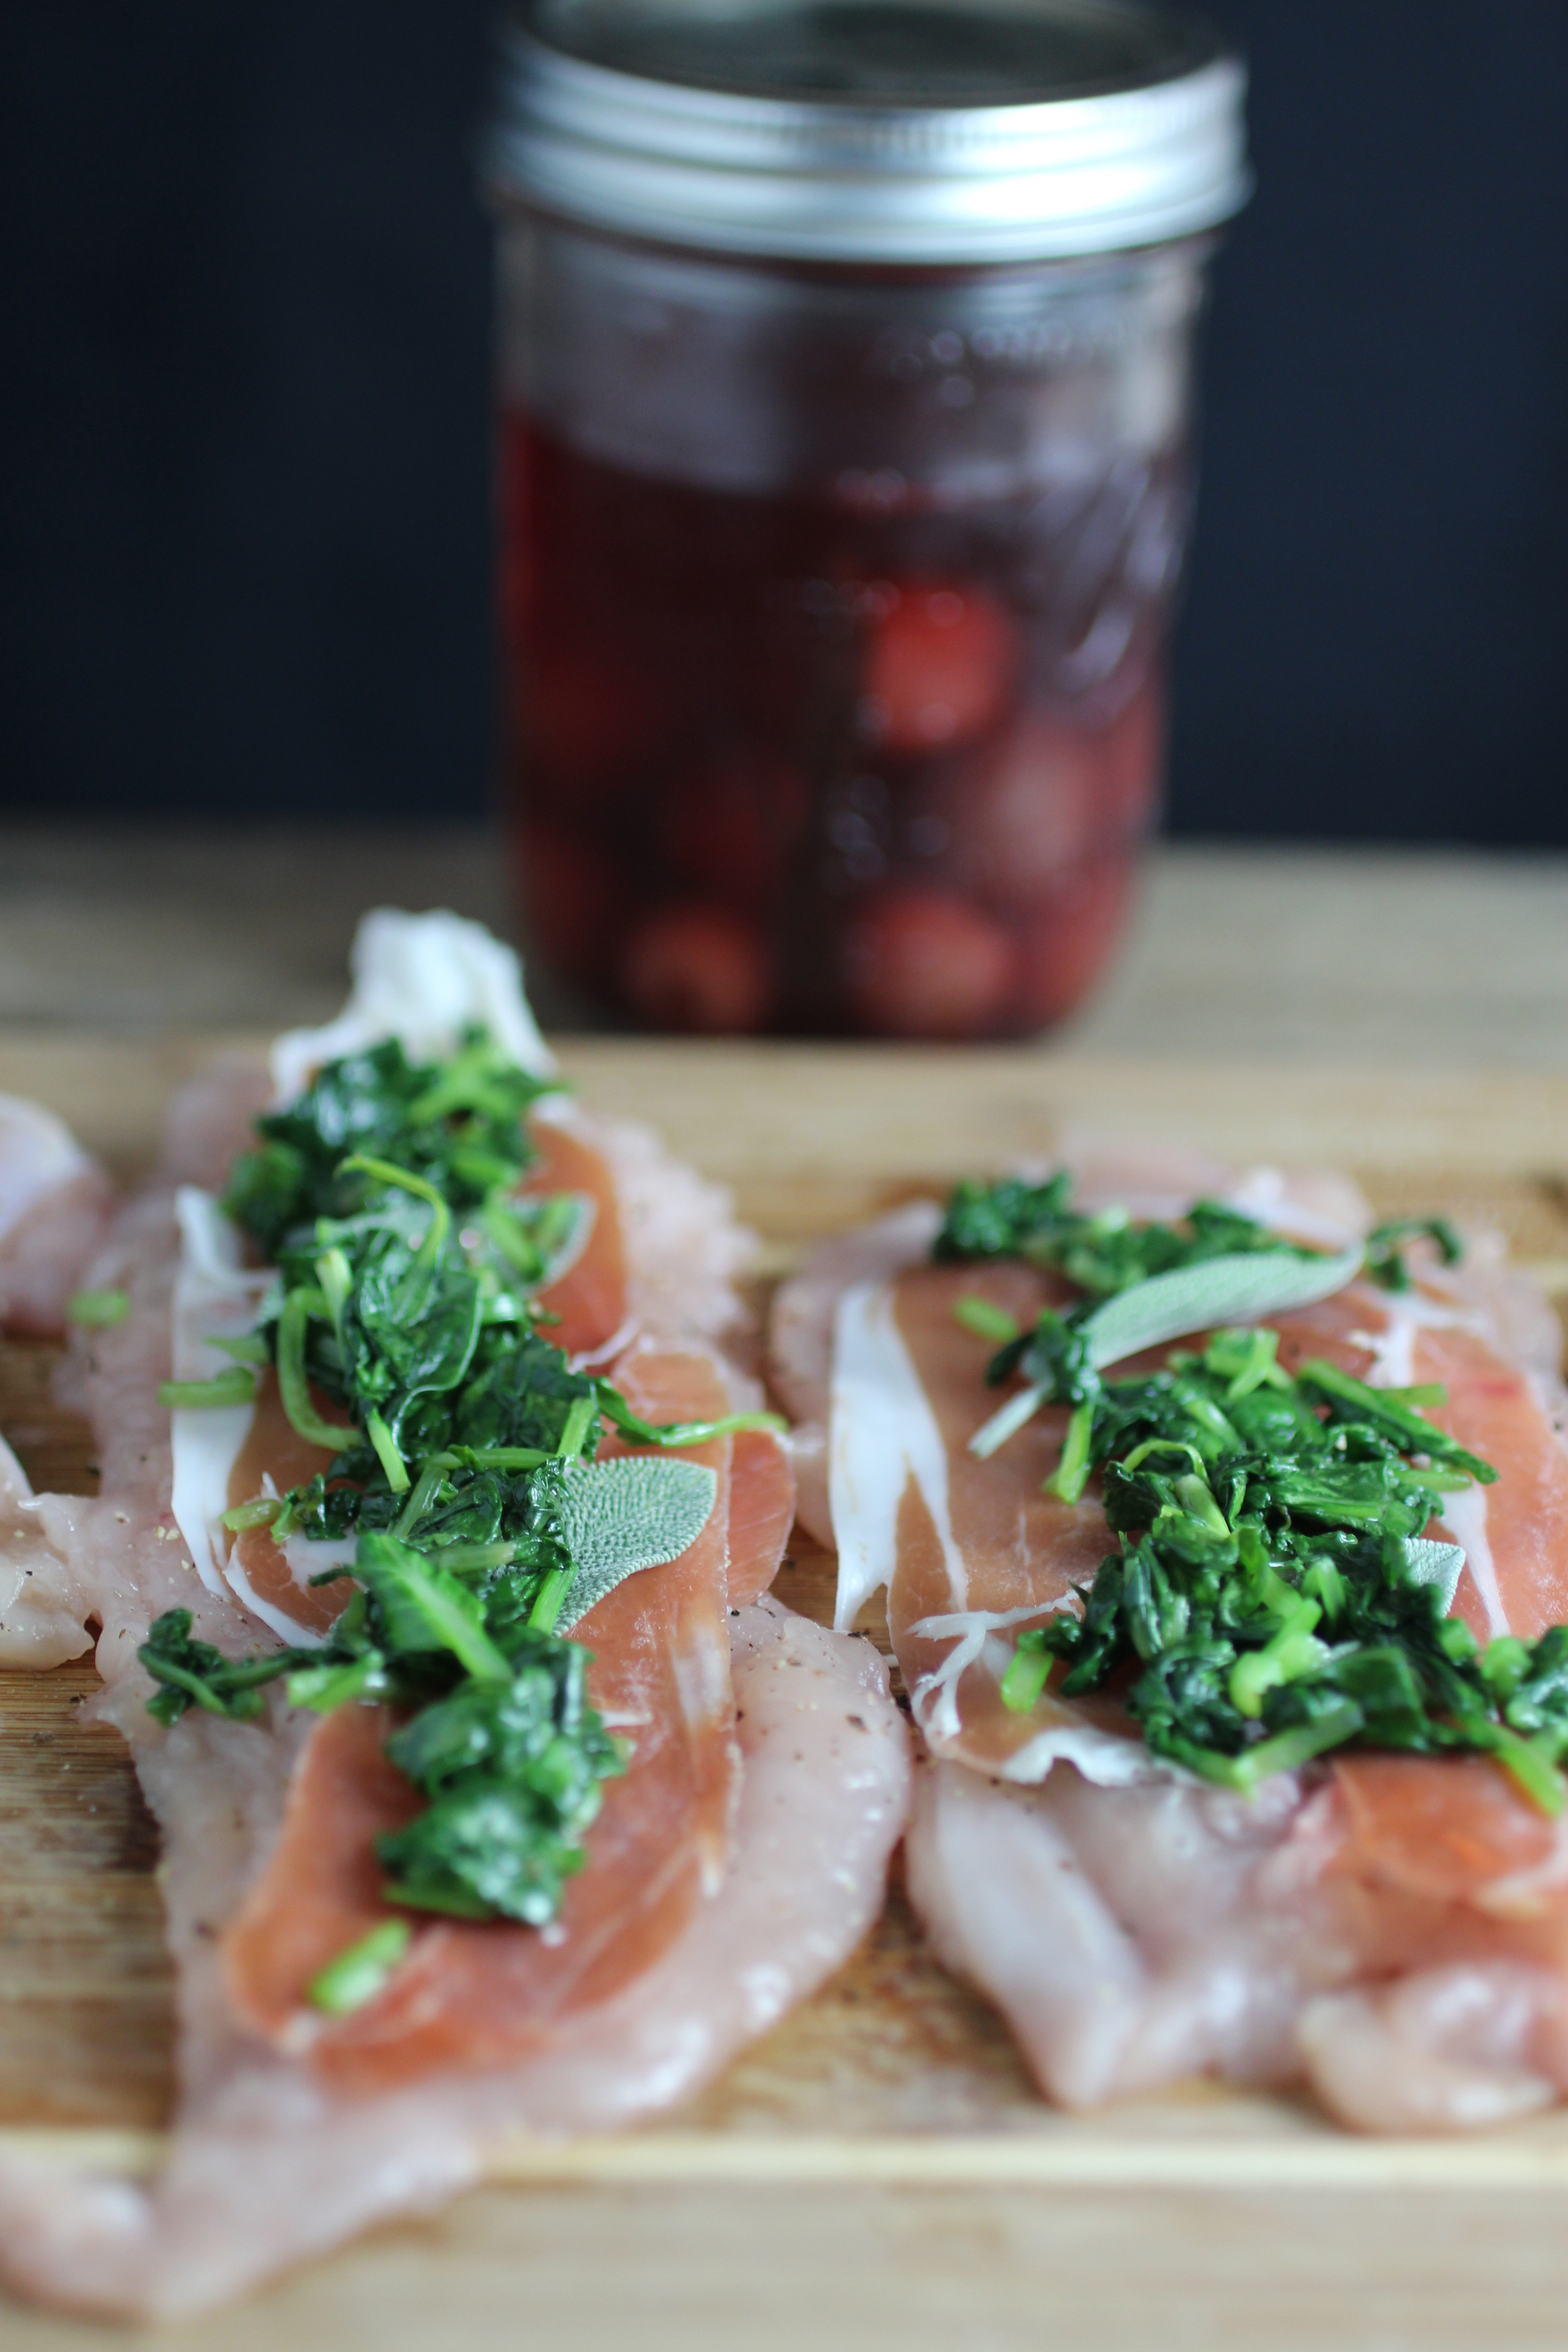 Brandied cherries are a great complement to the savory chicken and prosciutto.